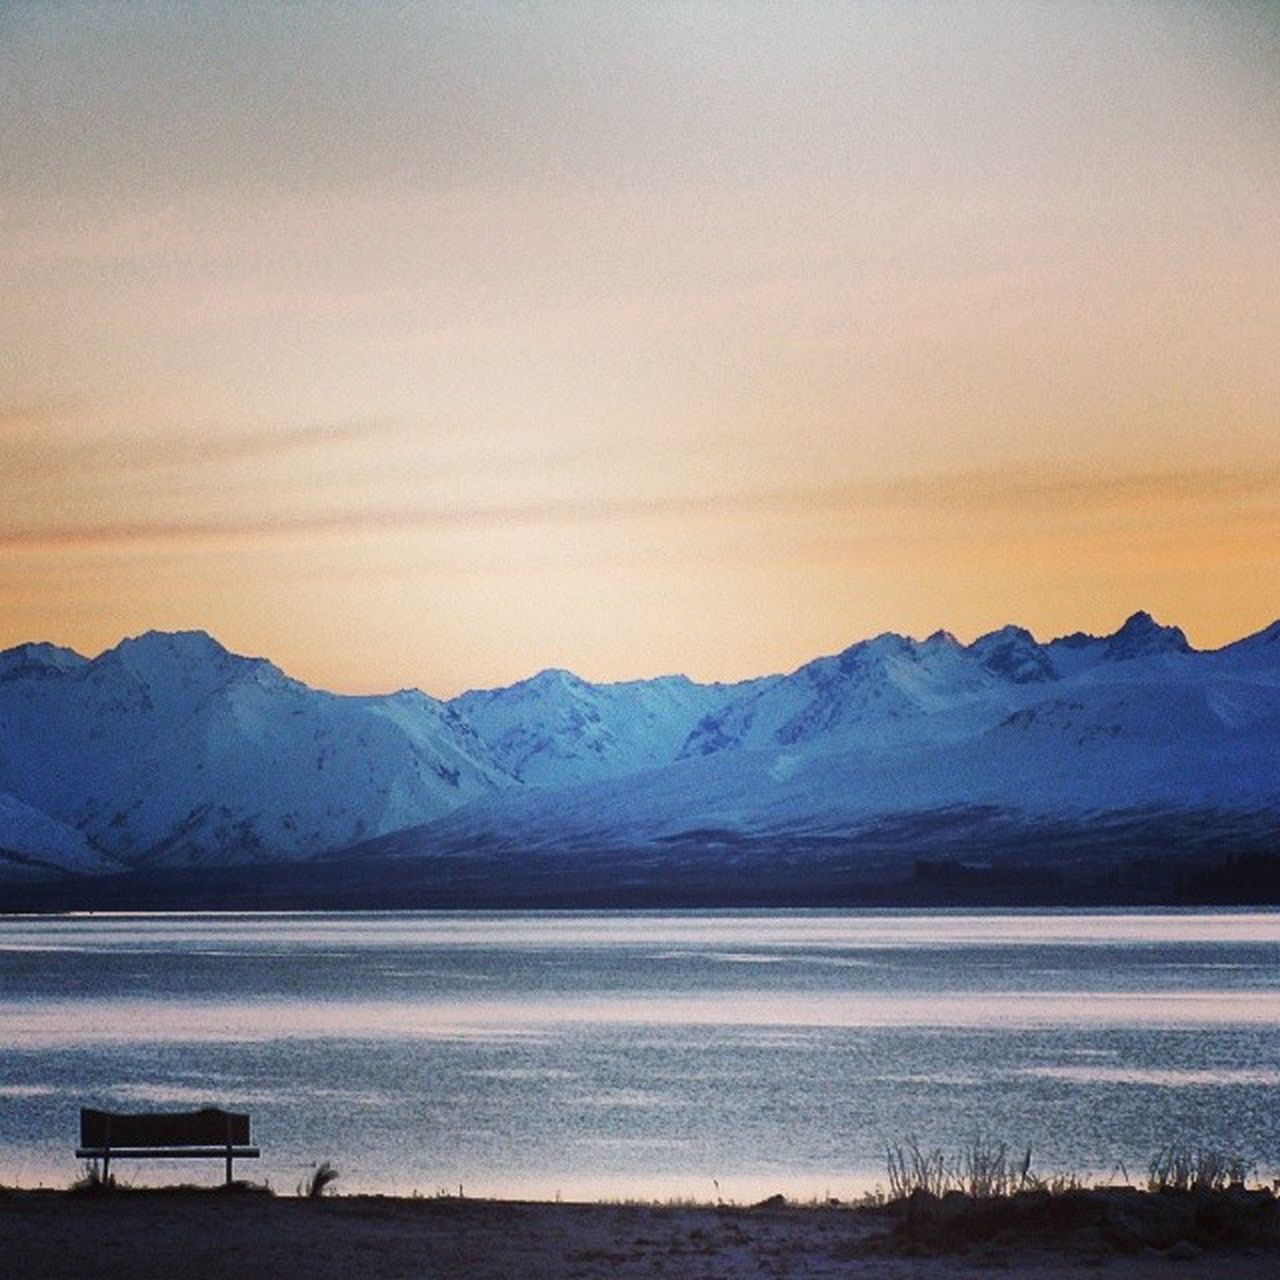 New_Zealand NZ Lake_Tekapo Dawn Mountains Snow Cold Morning Scenery View Amazing Awesome Beautiful Natural Sky Travel Tourist The Great Outdoors - 2016 EyeEm AwardsPeaceful Old Photo Lonely Bench Place_For_Contemplation Instanature InstagramNZ